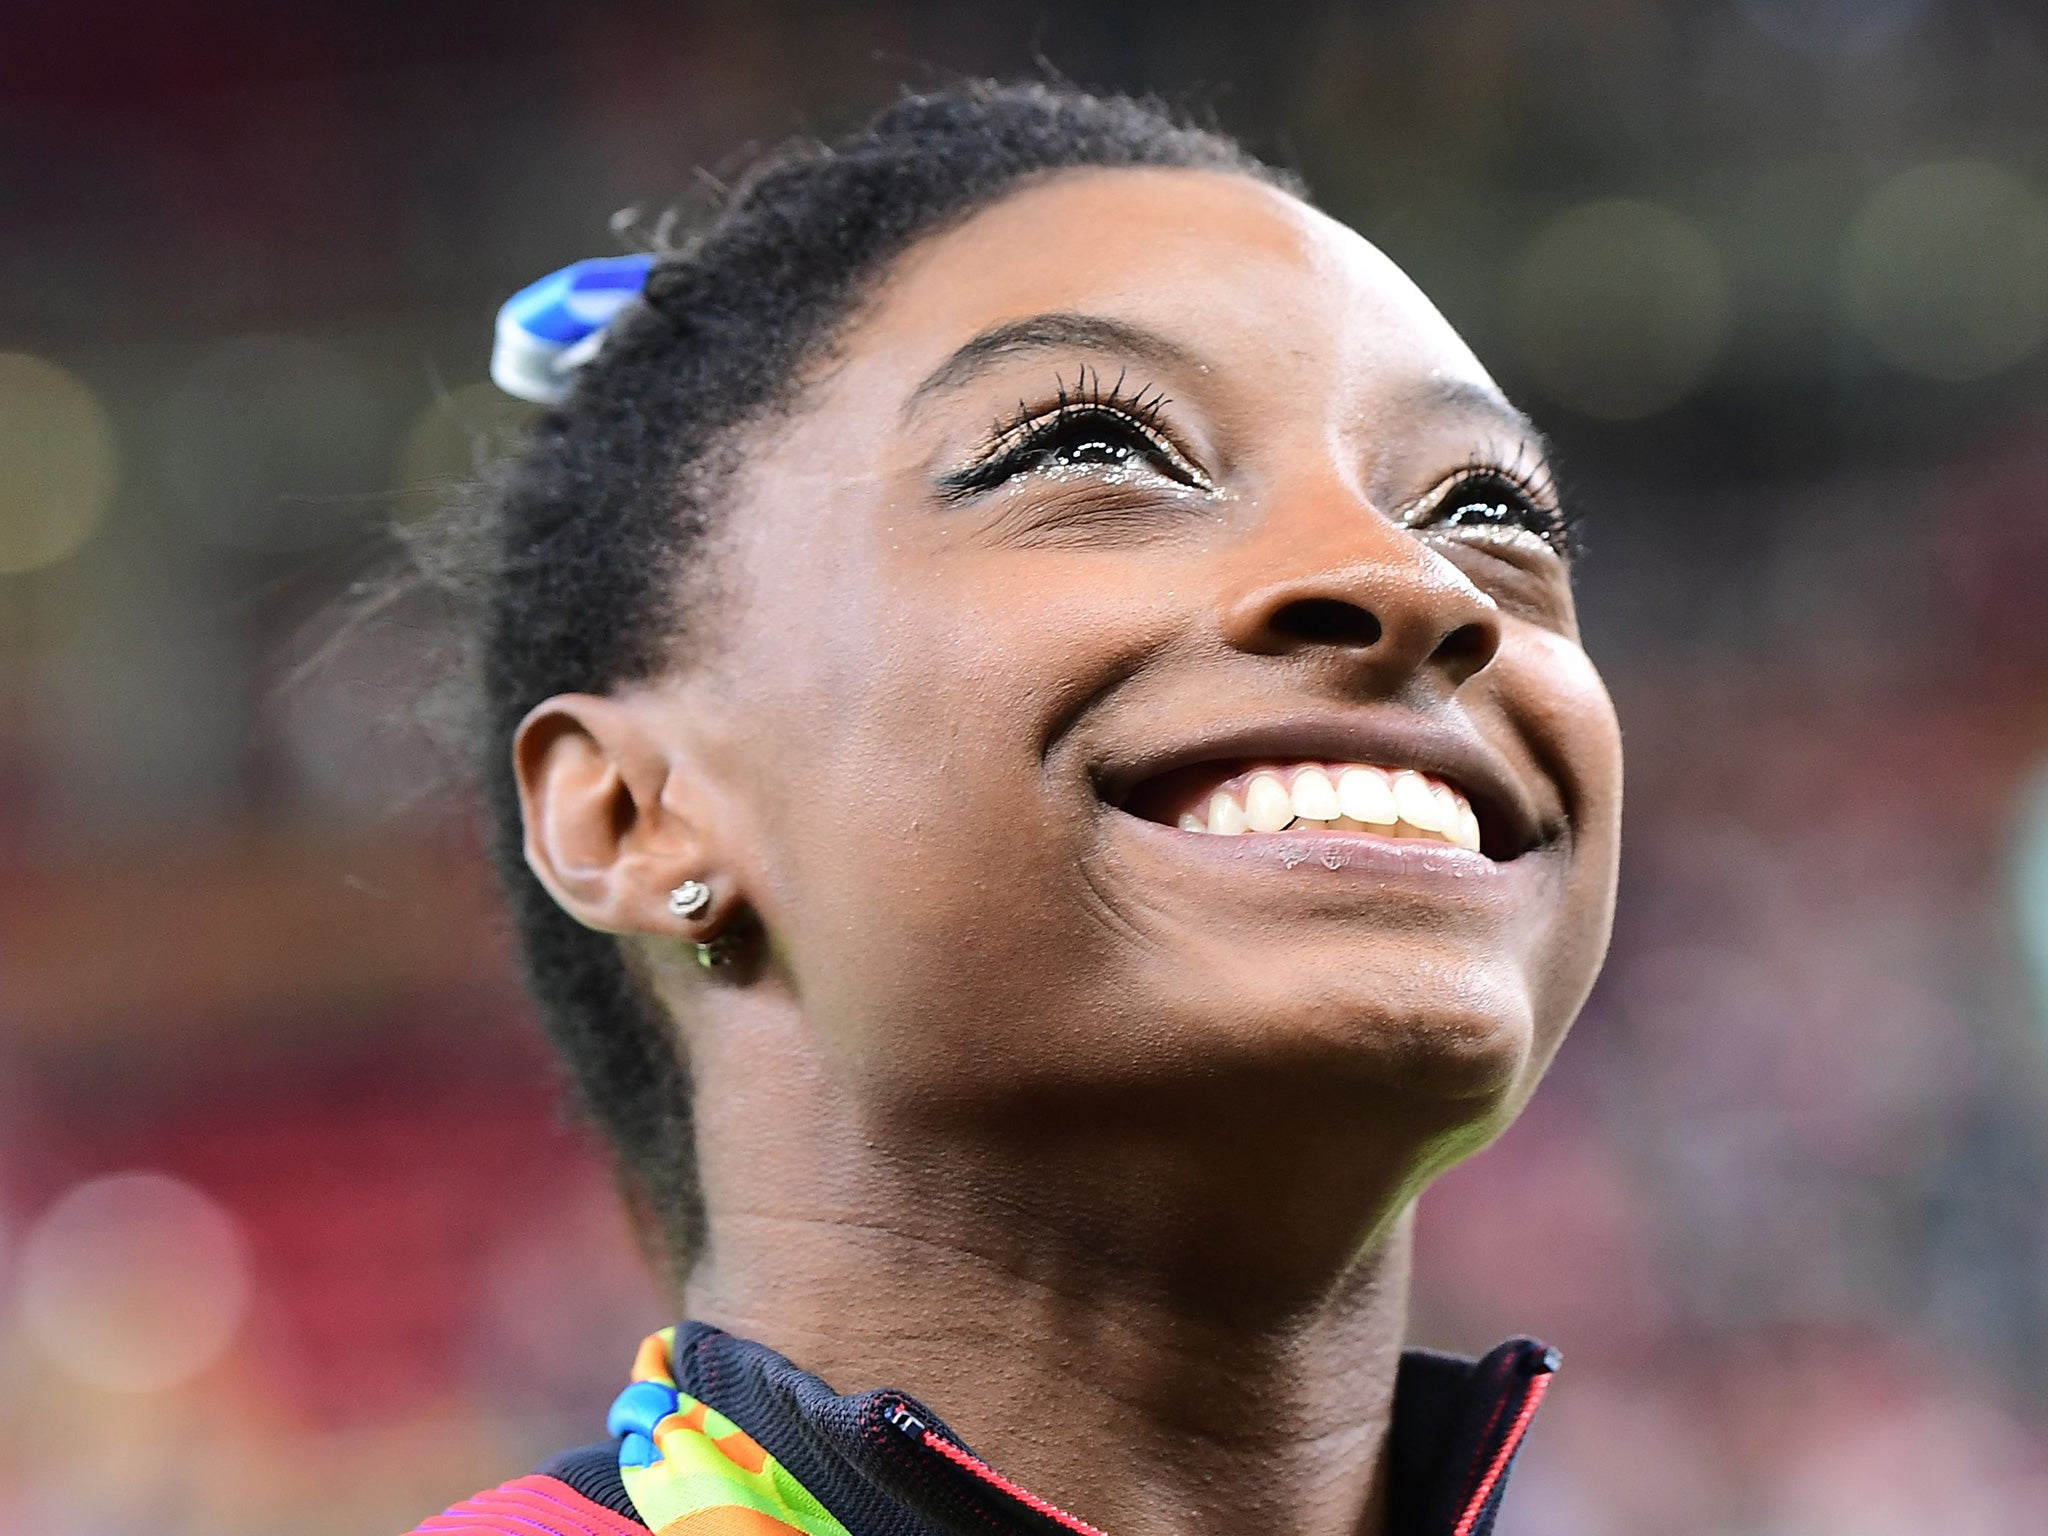 Simone Arianne Biles born March 14 1997 is an American artistic gymnast Biles is the 2016 Olympic individual allaround vault and floor gold medalist and